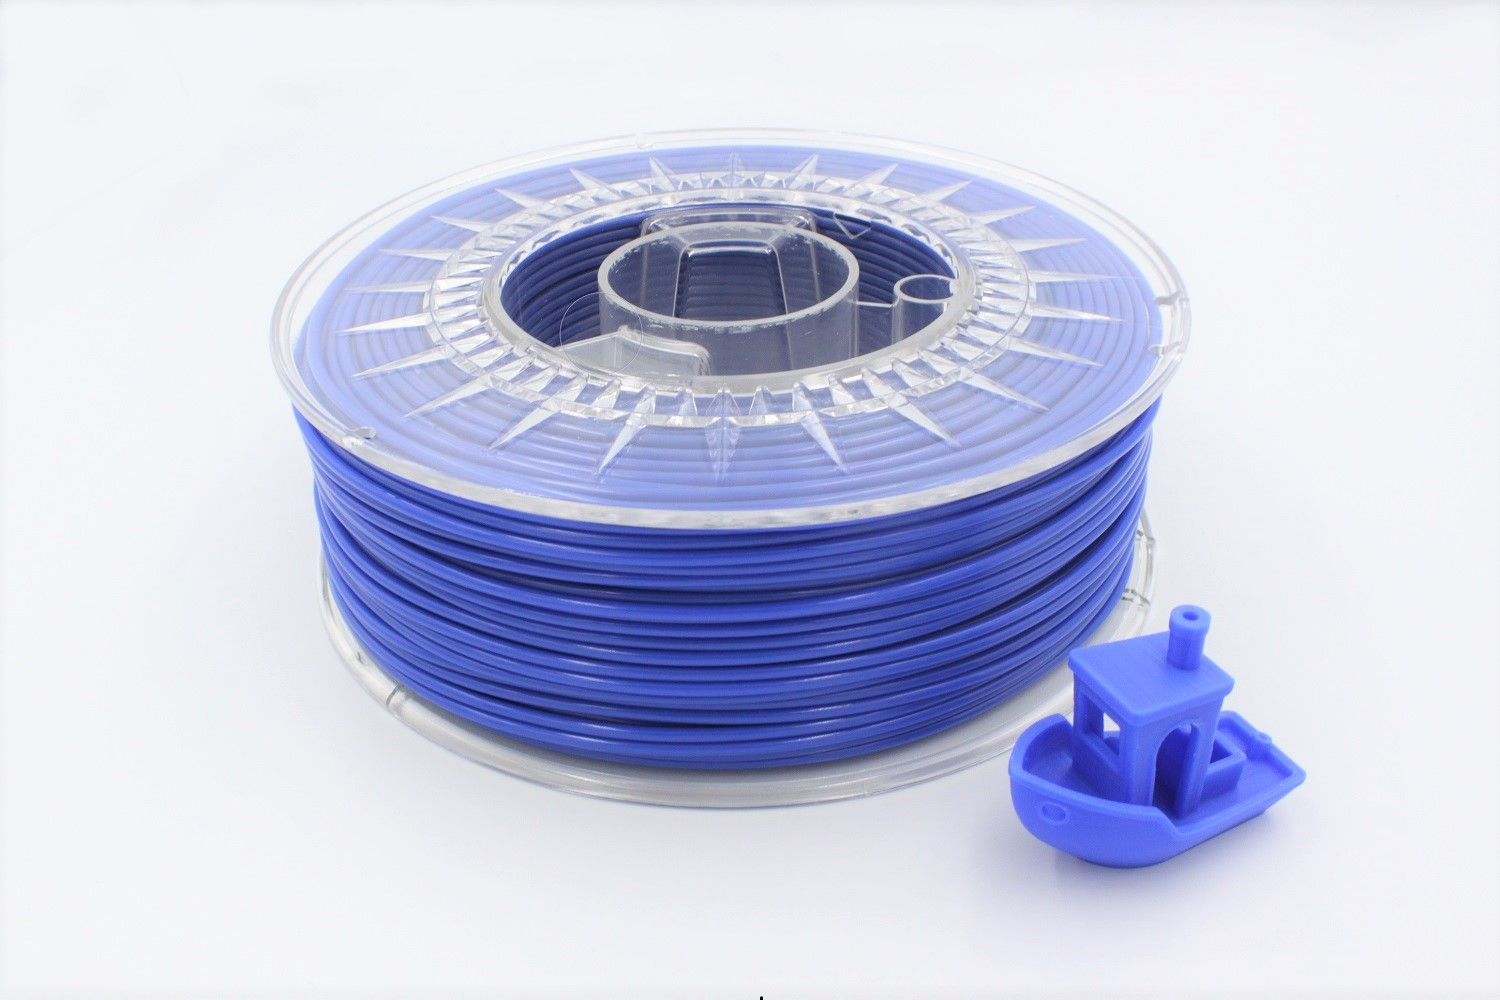 More info on Blue Velvet Filament